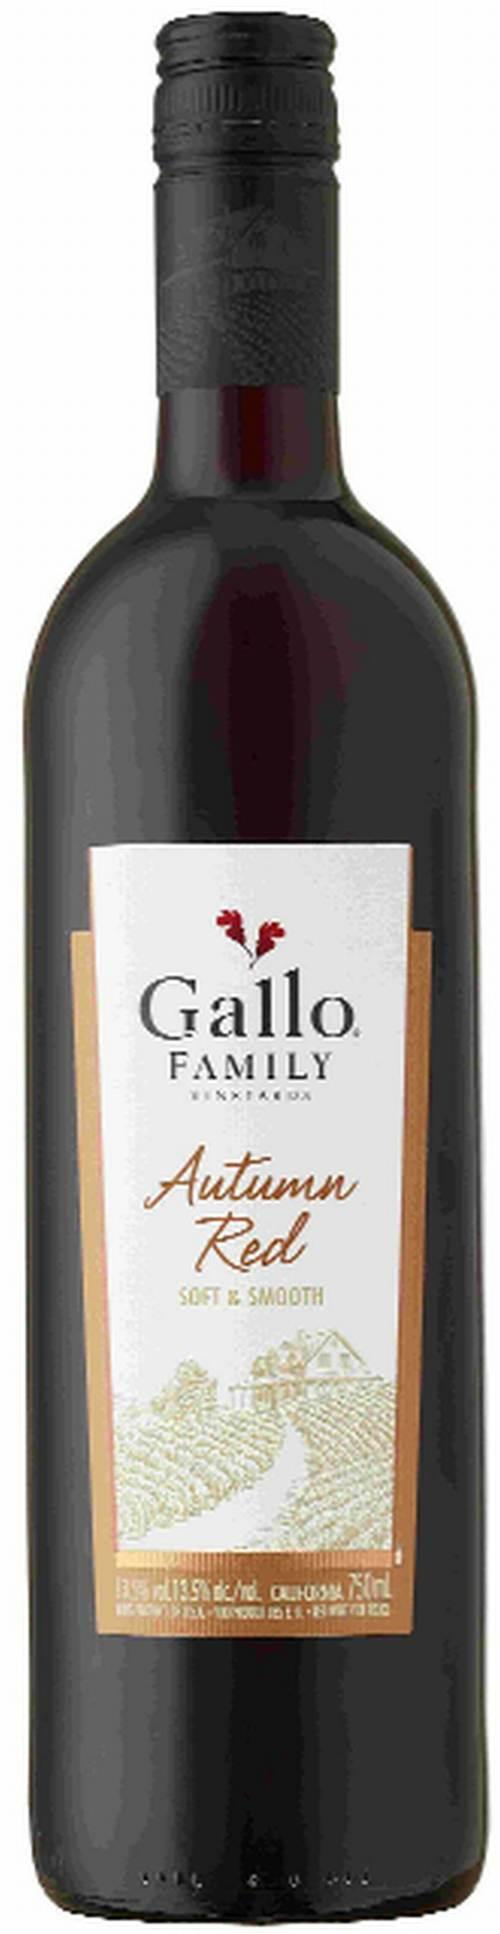 ej gallo winery essay The winery was bought by e & j gallo winery in 2005 an essay or article that gives a critical evaluation gallo wine's lisa metheny.